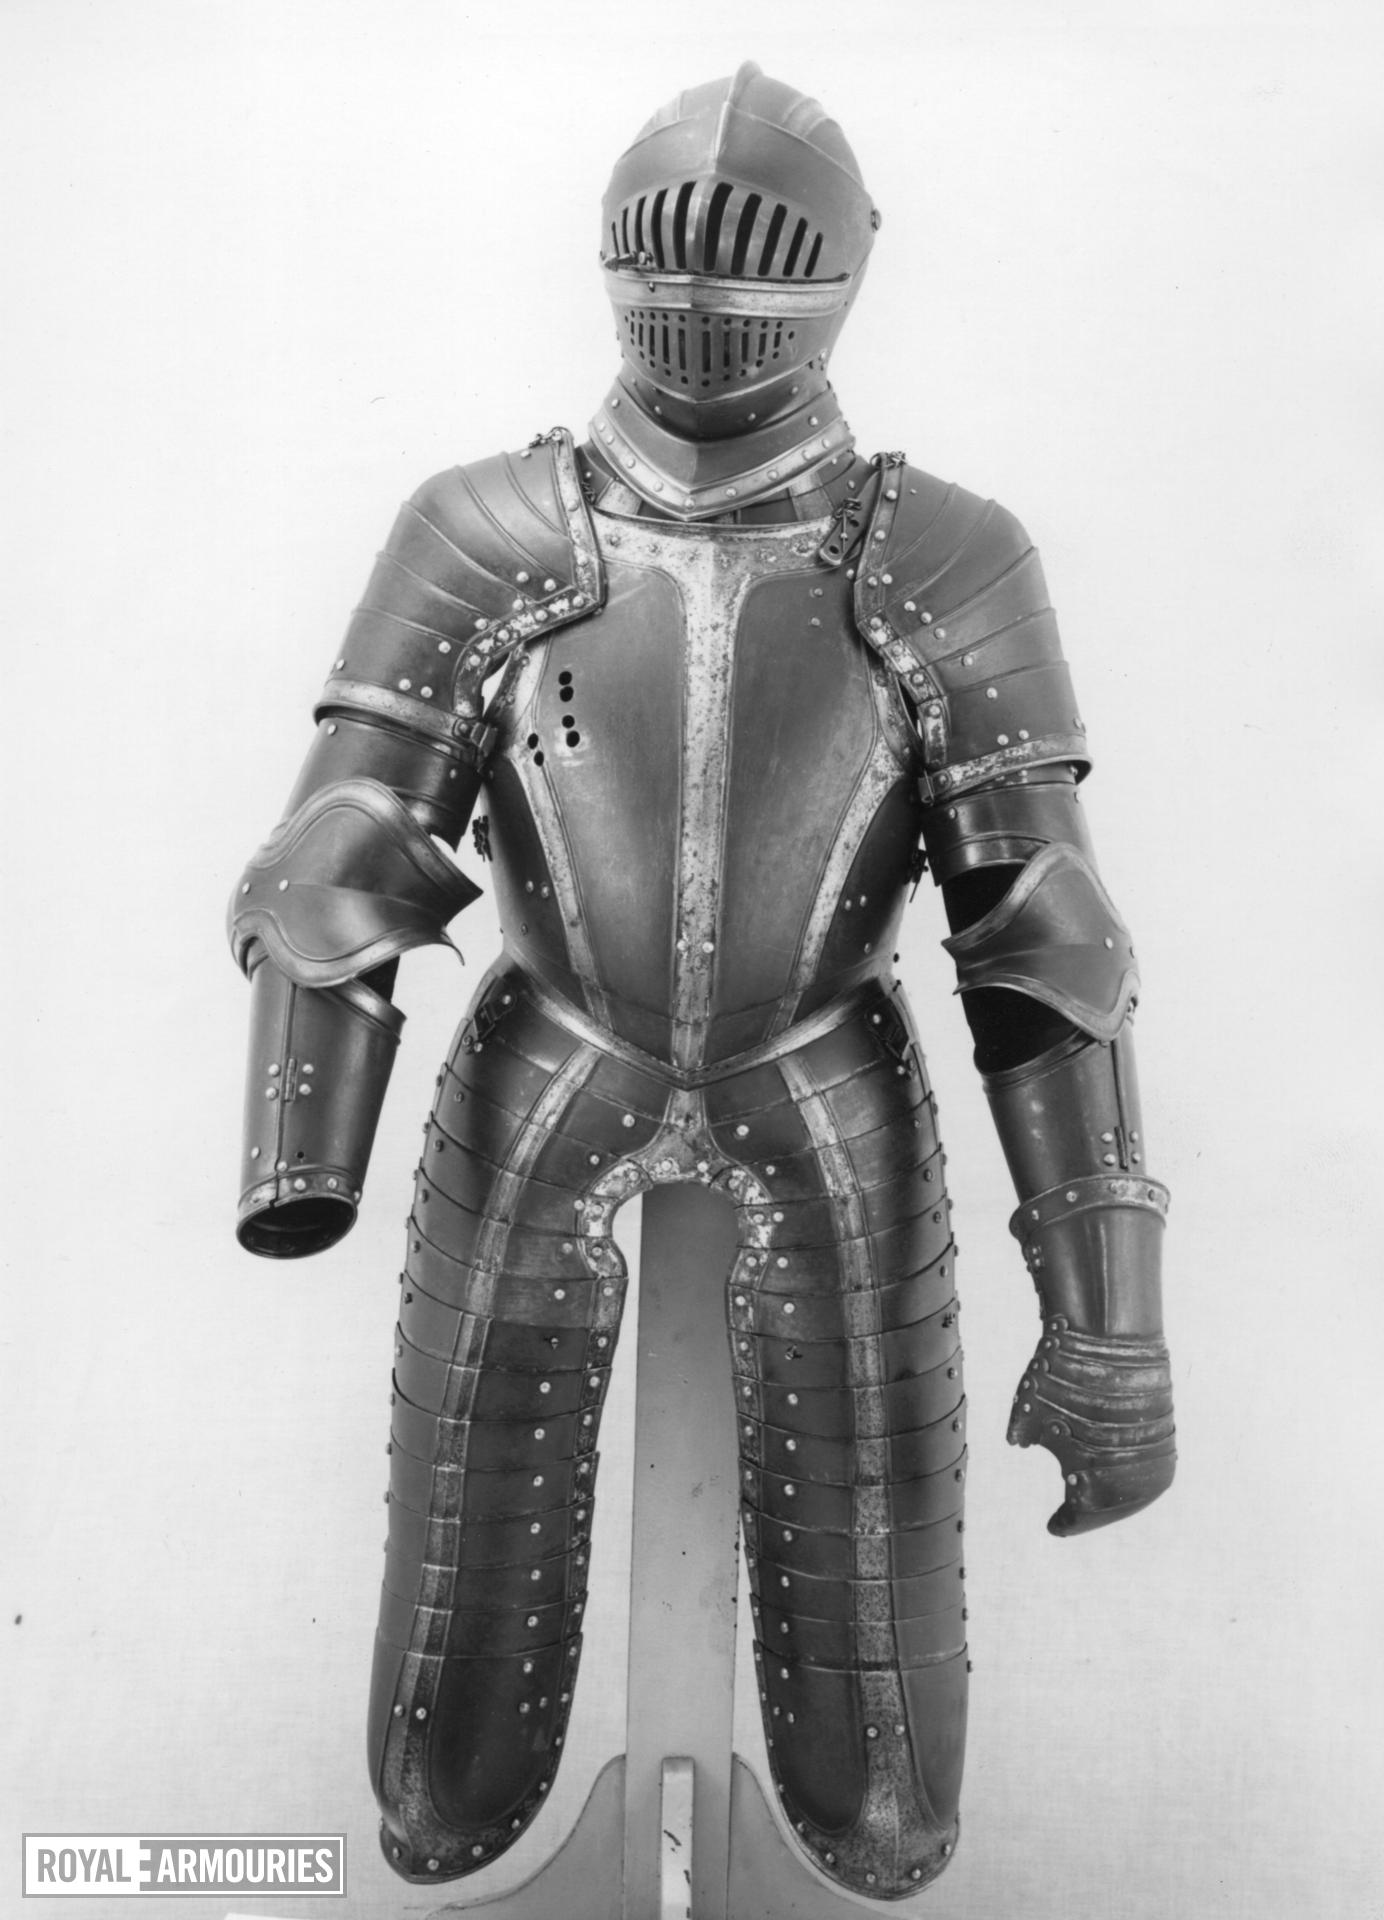 Breastplate Part of II.137, three quarter armour